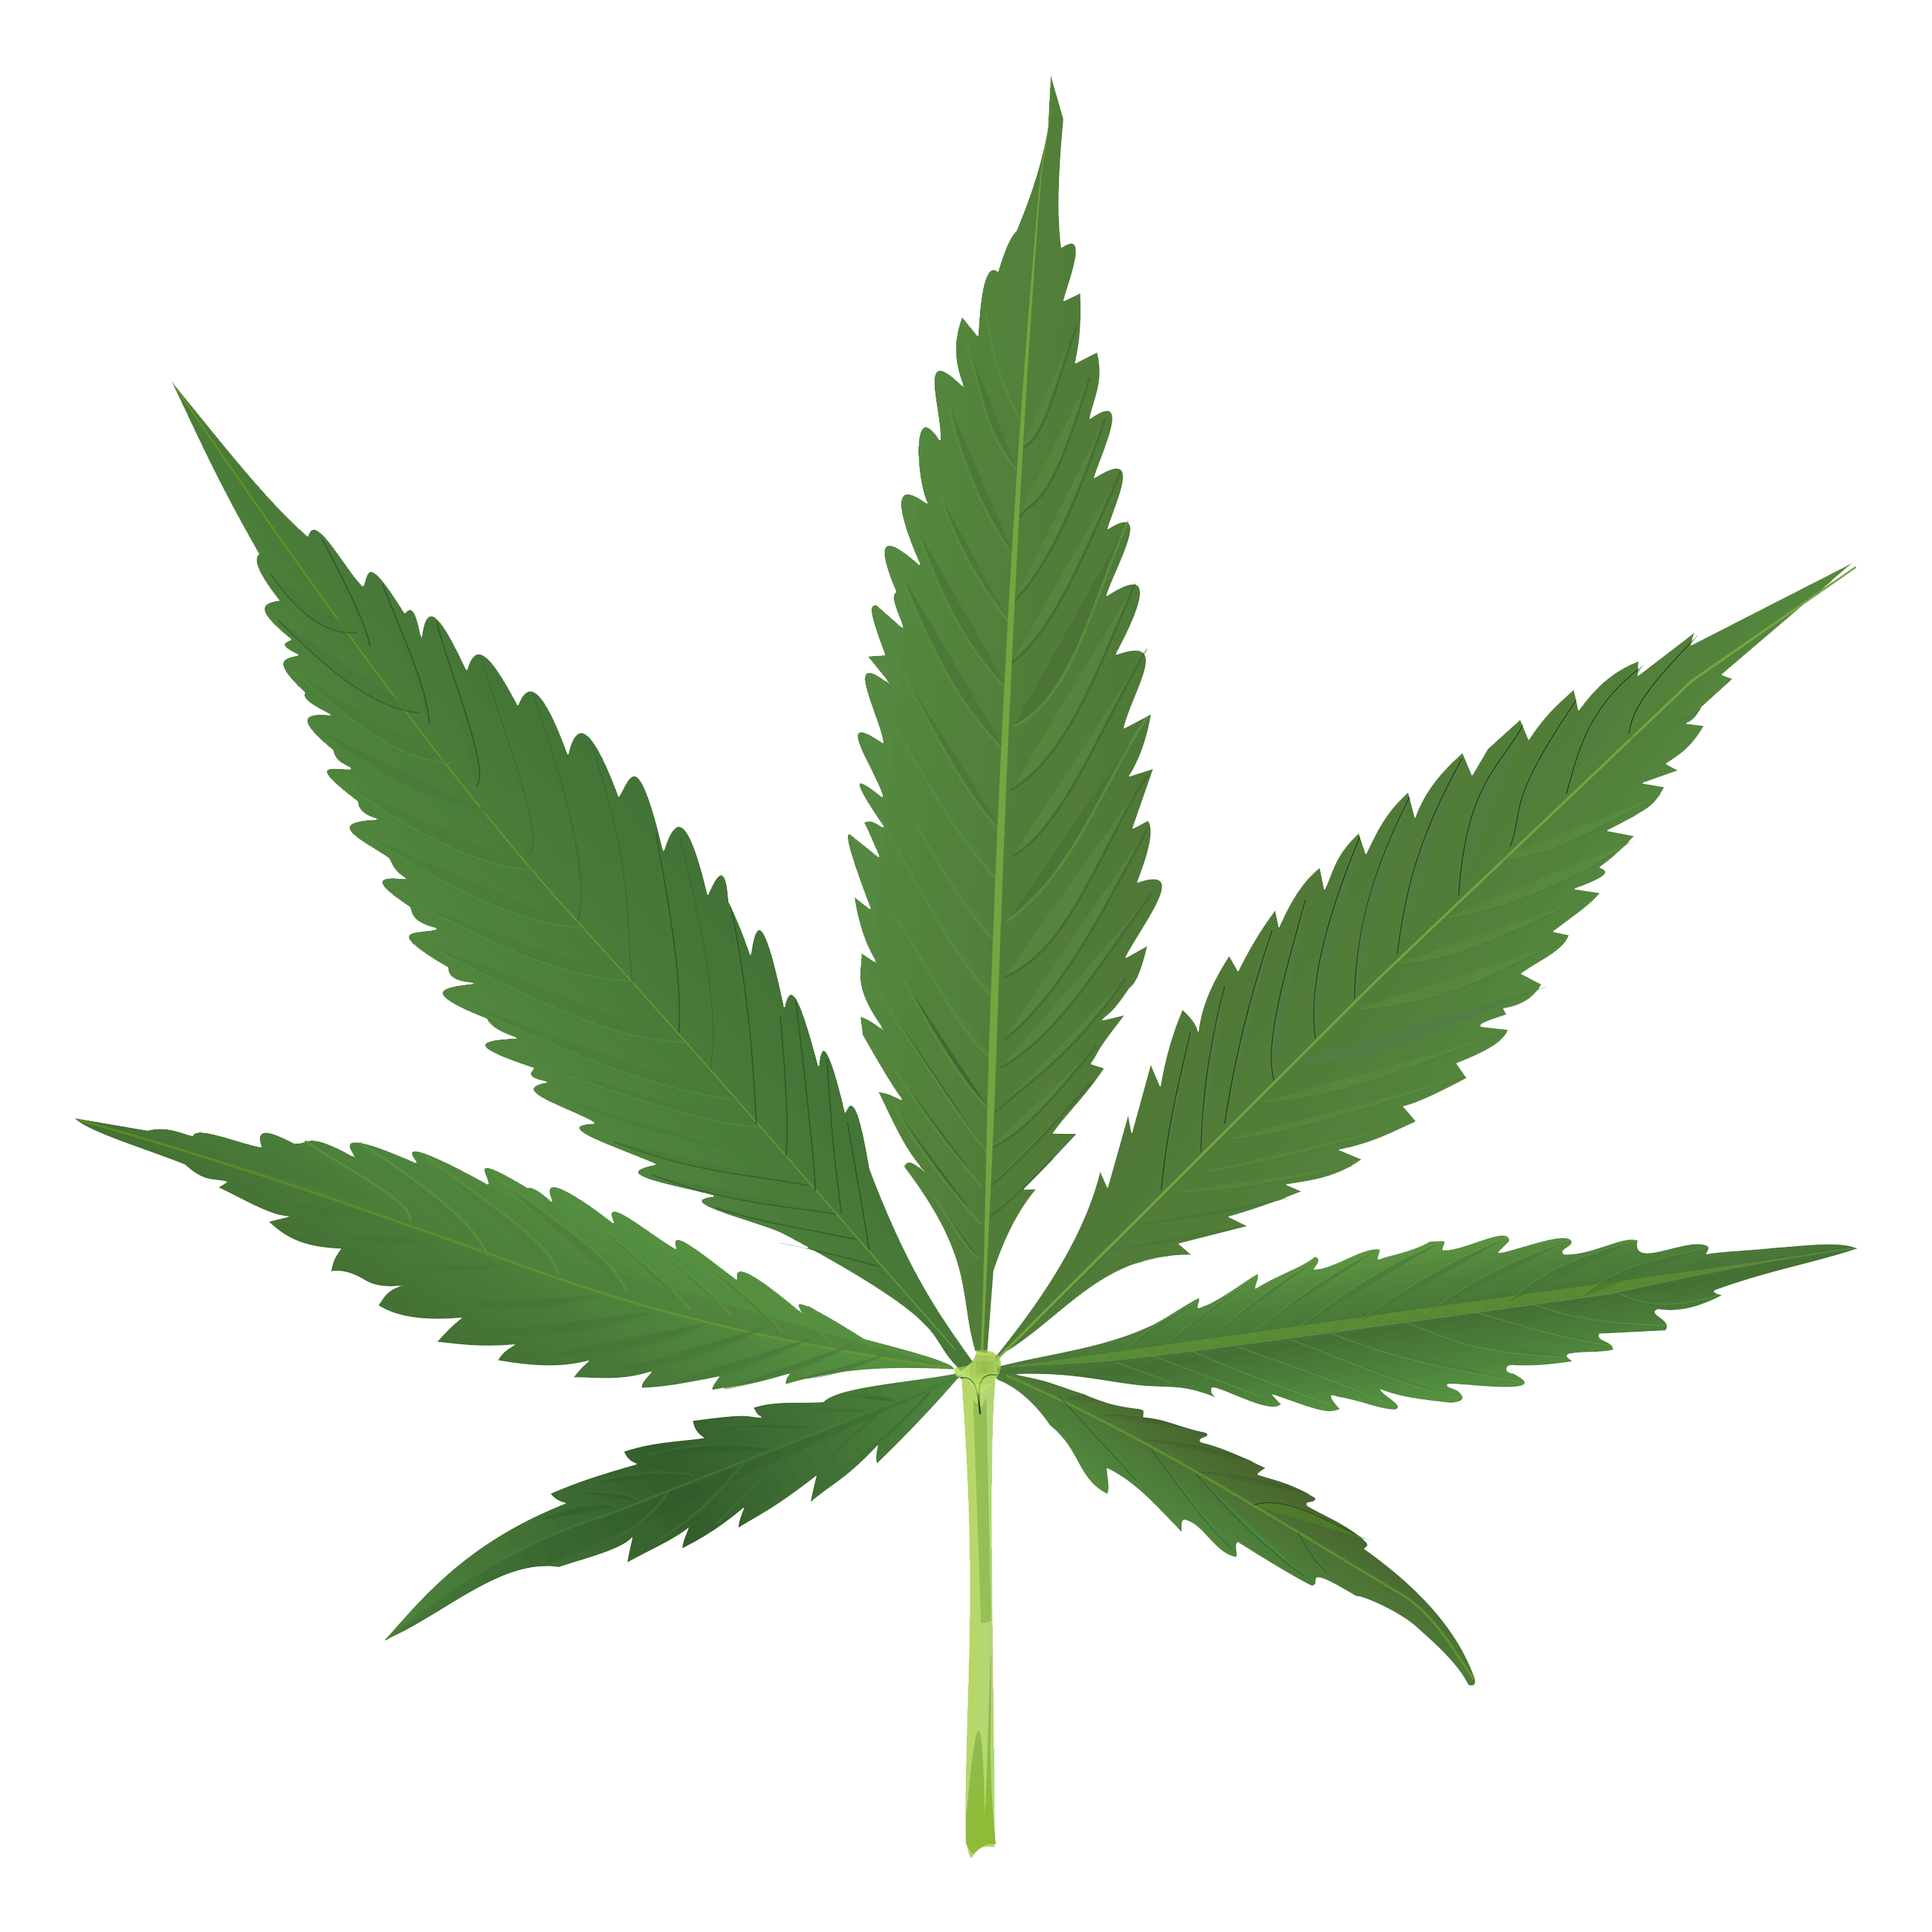 2600x2600 Thug Life Weed Leaf Transparent Png